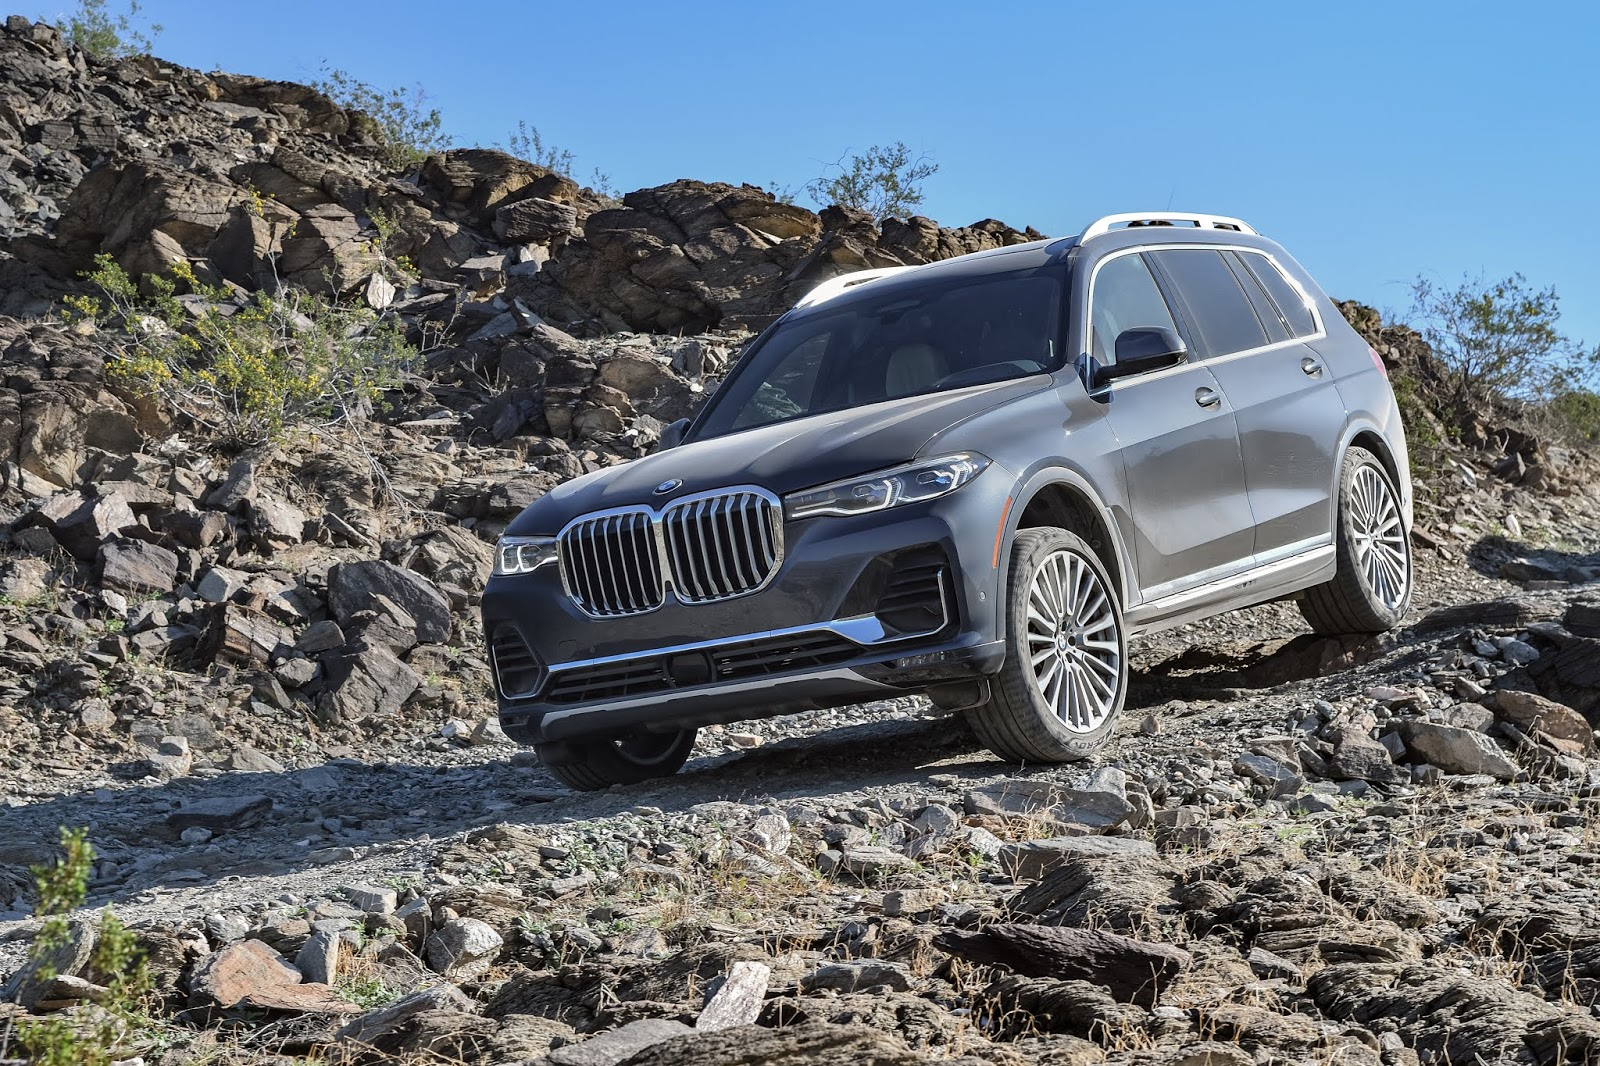 BMW X7 SAV Launched In India At Rs. 98.90 Lakhs, President of BMW's X Family | VANDI4U